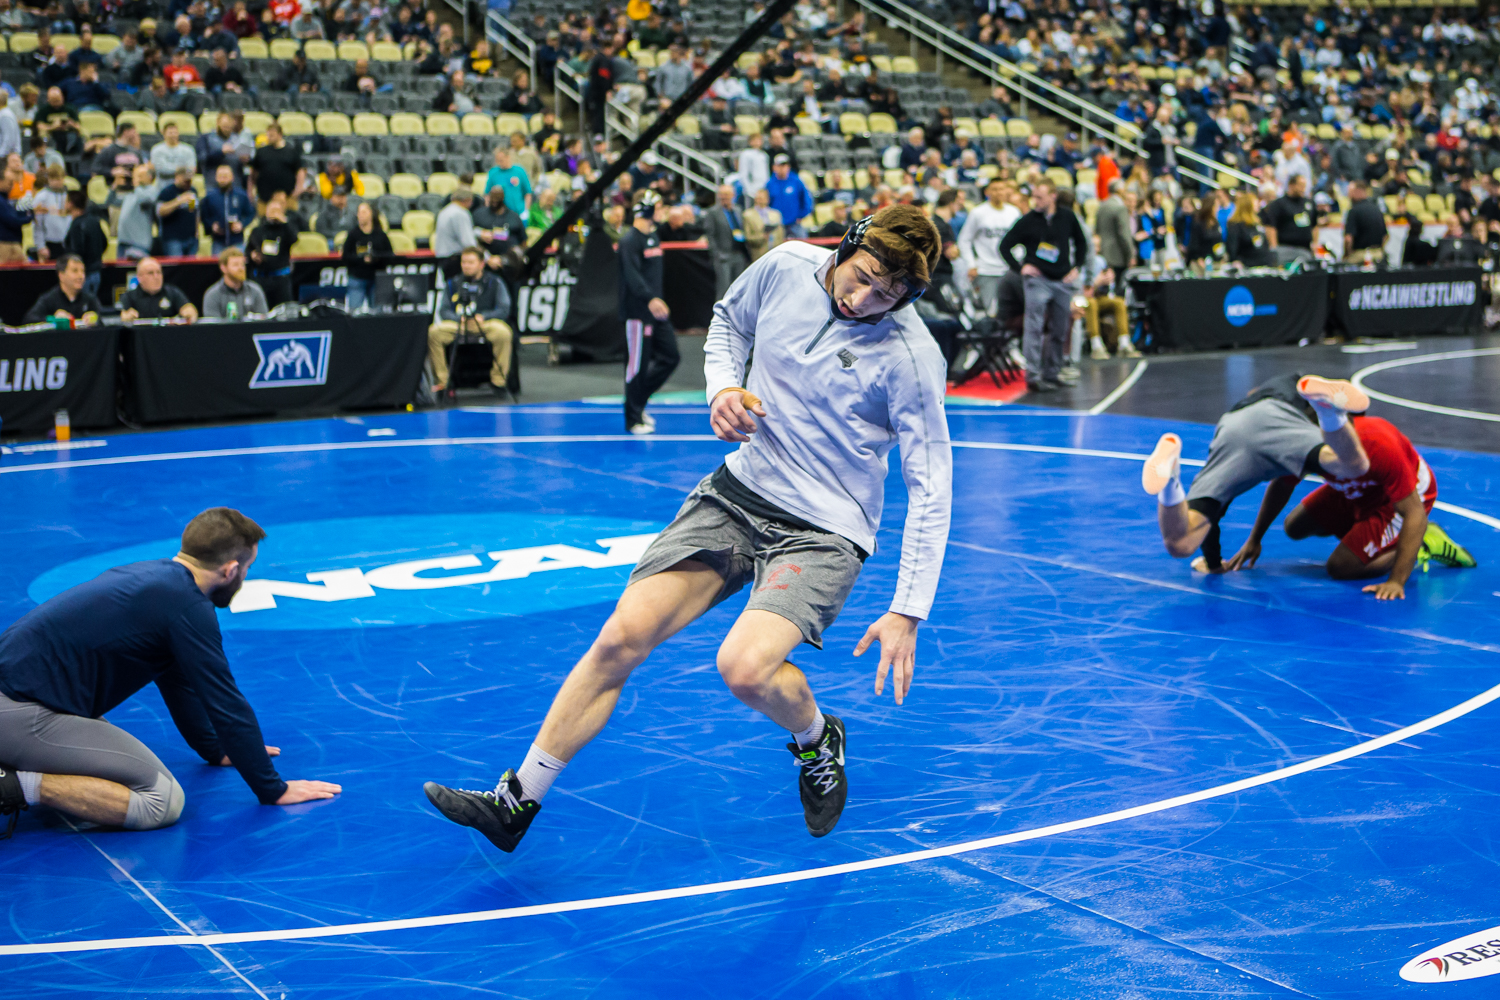 A+wrestler+runs+across+the+mats+during+the+fourth+session+of+the+2019+NCAA+D1+Wrestling+Championships+at+PPG+Paints+Arena+in+Pittsburgh%2C+PA+on+Friday%2C+March+22%2C+2019.+Berger+won+by+decision%2C+5-3.